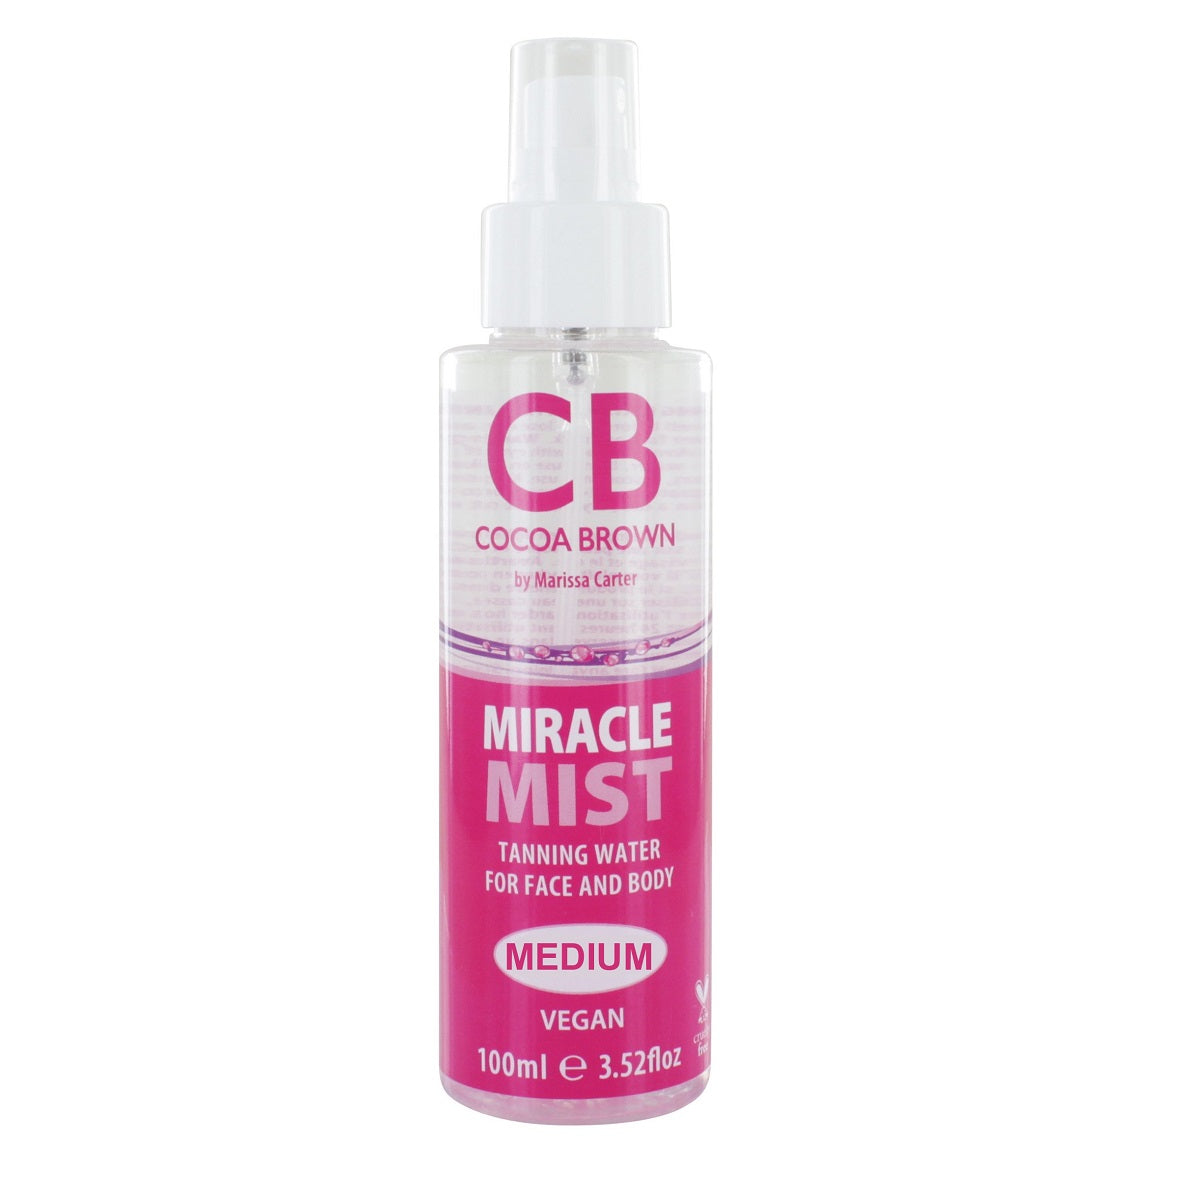 Cocoa Brown Miracle Mist Medium